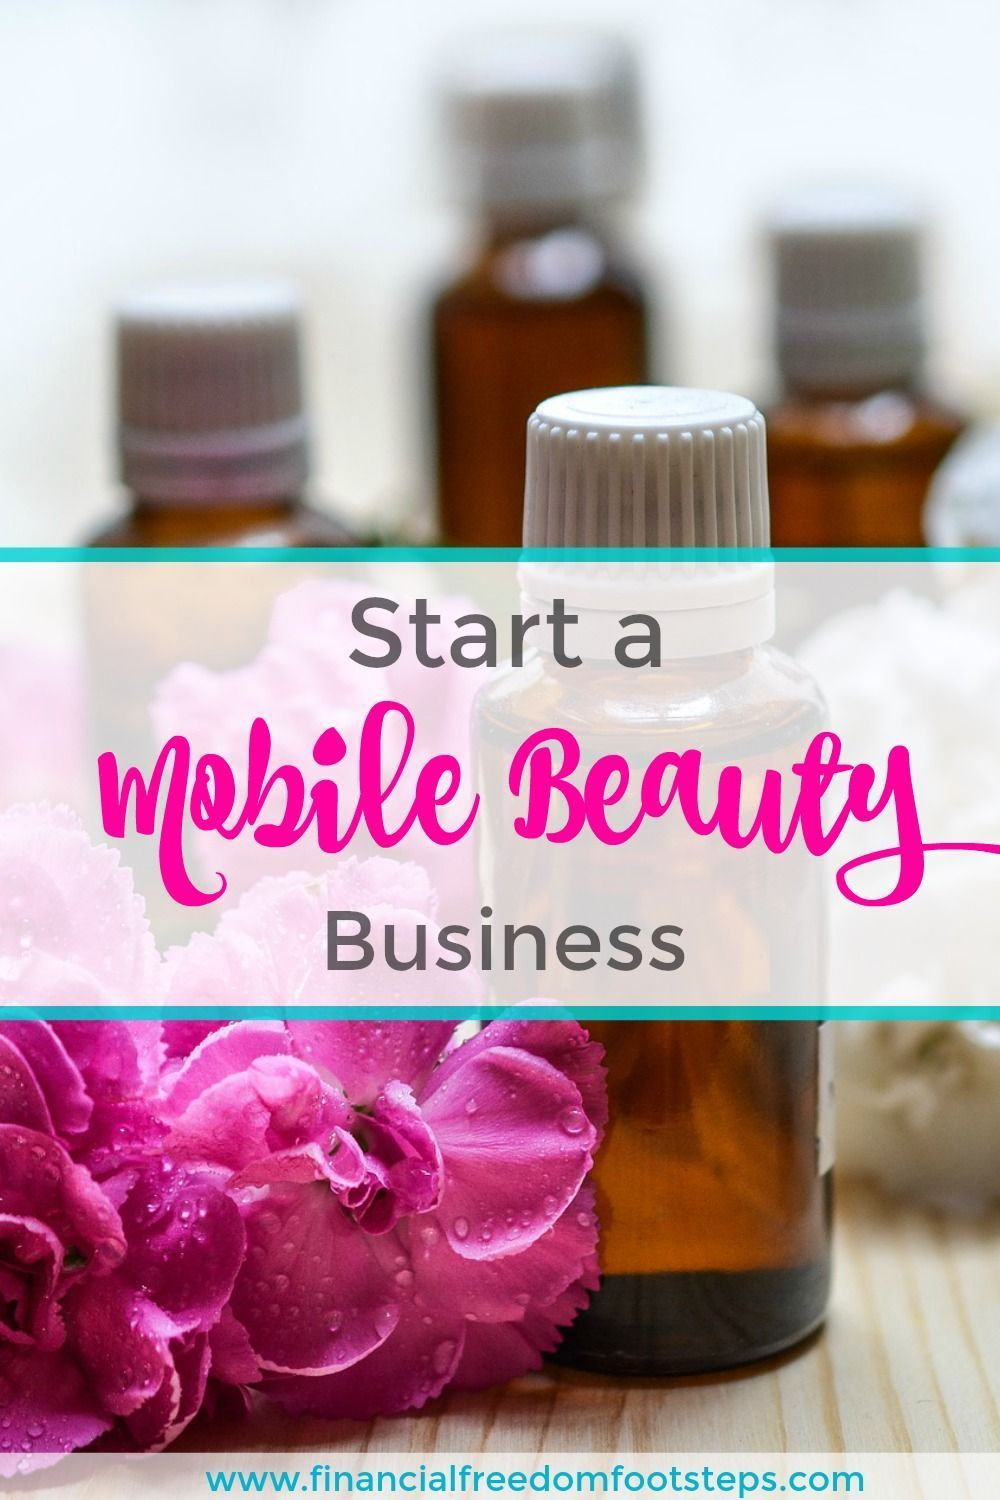 Start a Mobile Beauty Business Today #anxietyhustle Start a Mobile Beautician Side Hustle Business Today! - Free printable start-up kit shopping list to save you time and money - Financial Freedom Footsteps.com #anxietyhustle Start a Mobile Beauty Business Today #anxietyhustle Start a Mobile Beautician Side Hustle Business Today! - Free printable start-up kit shopping list to save you time and money - Financial Freedom Footsteps.com #anxietyhustle